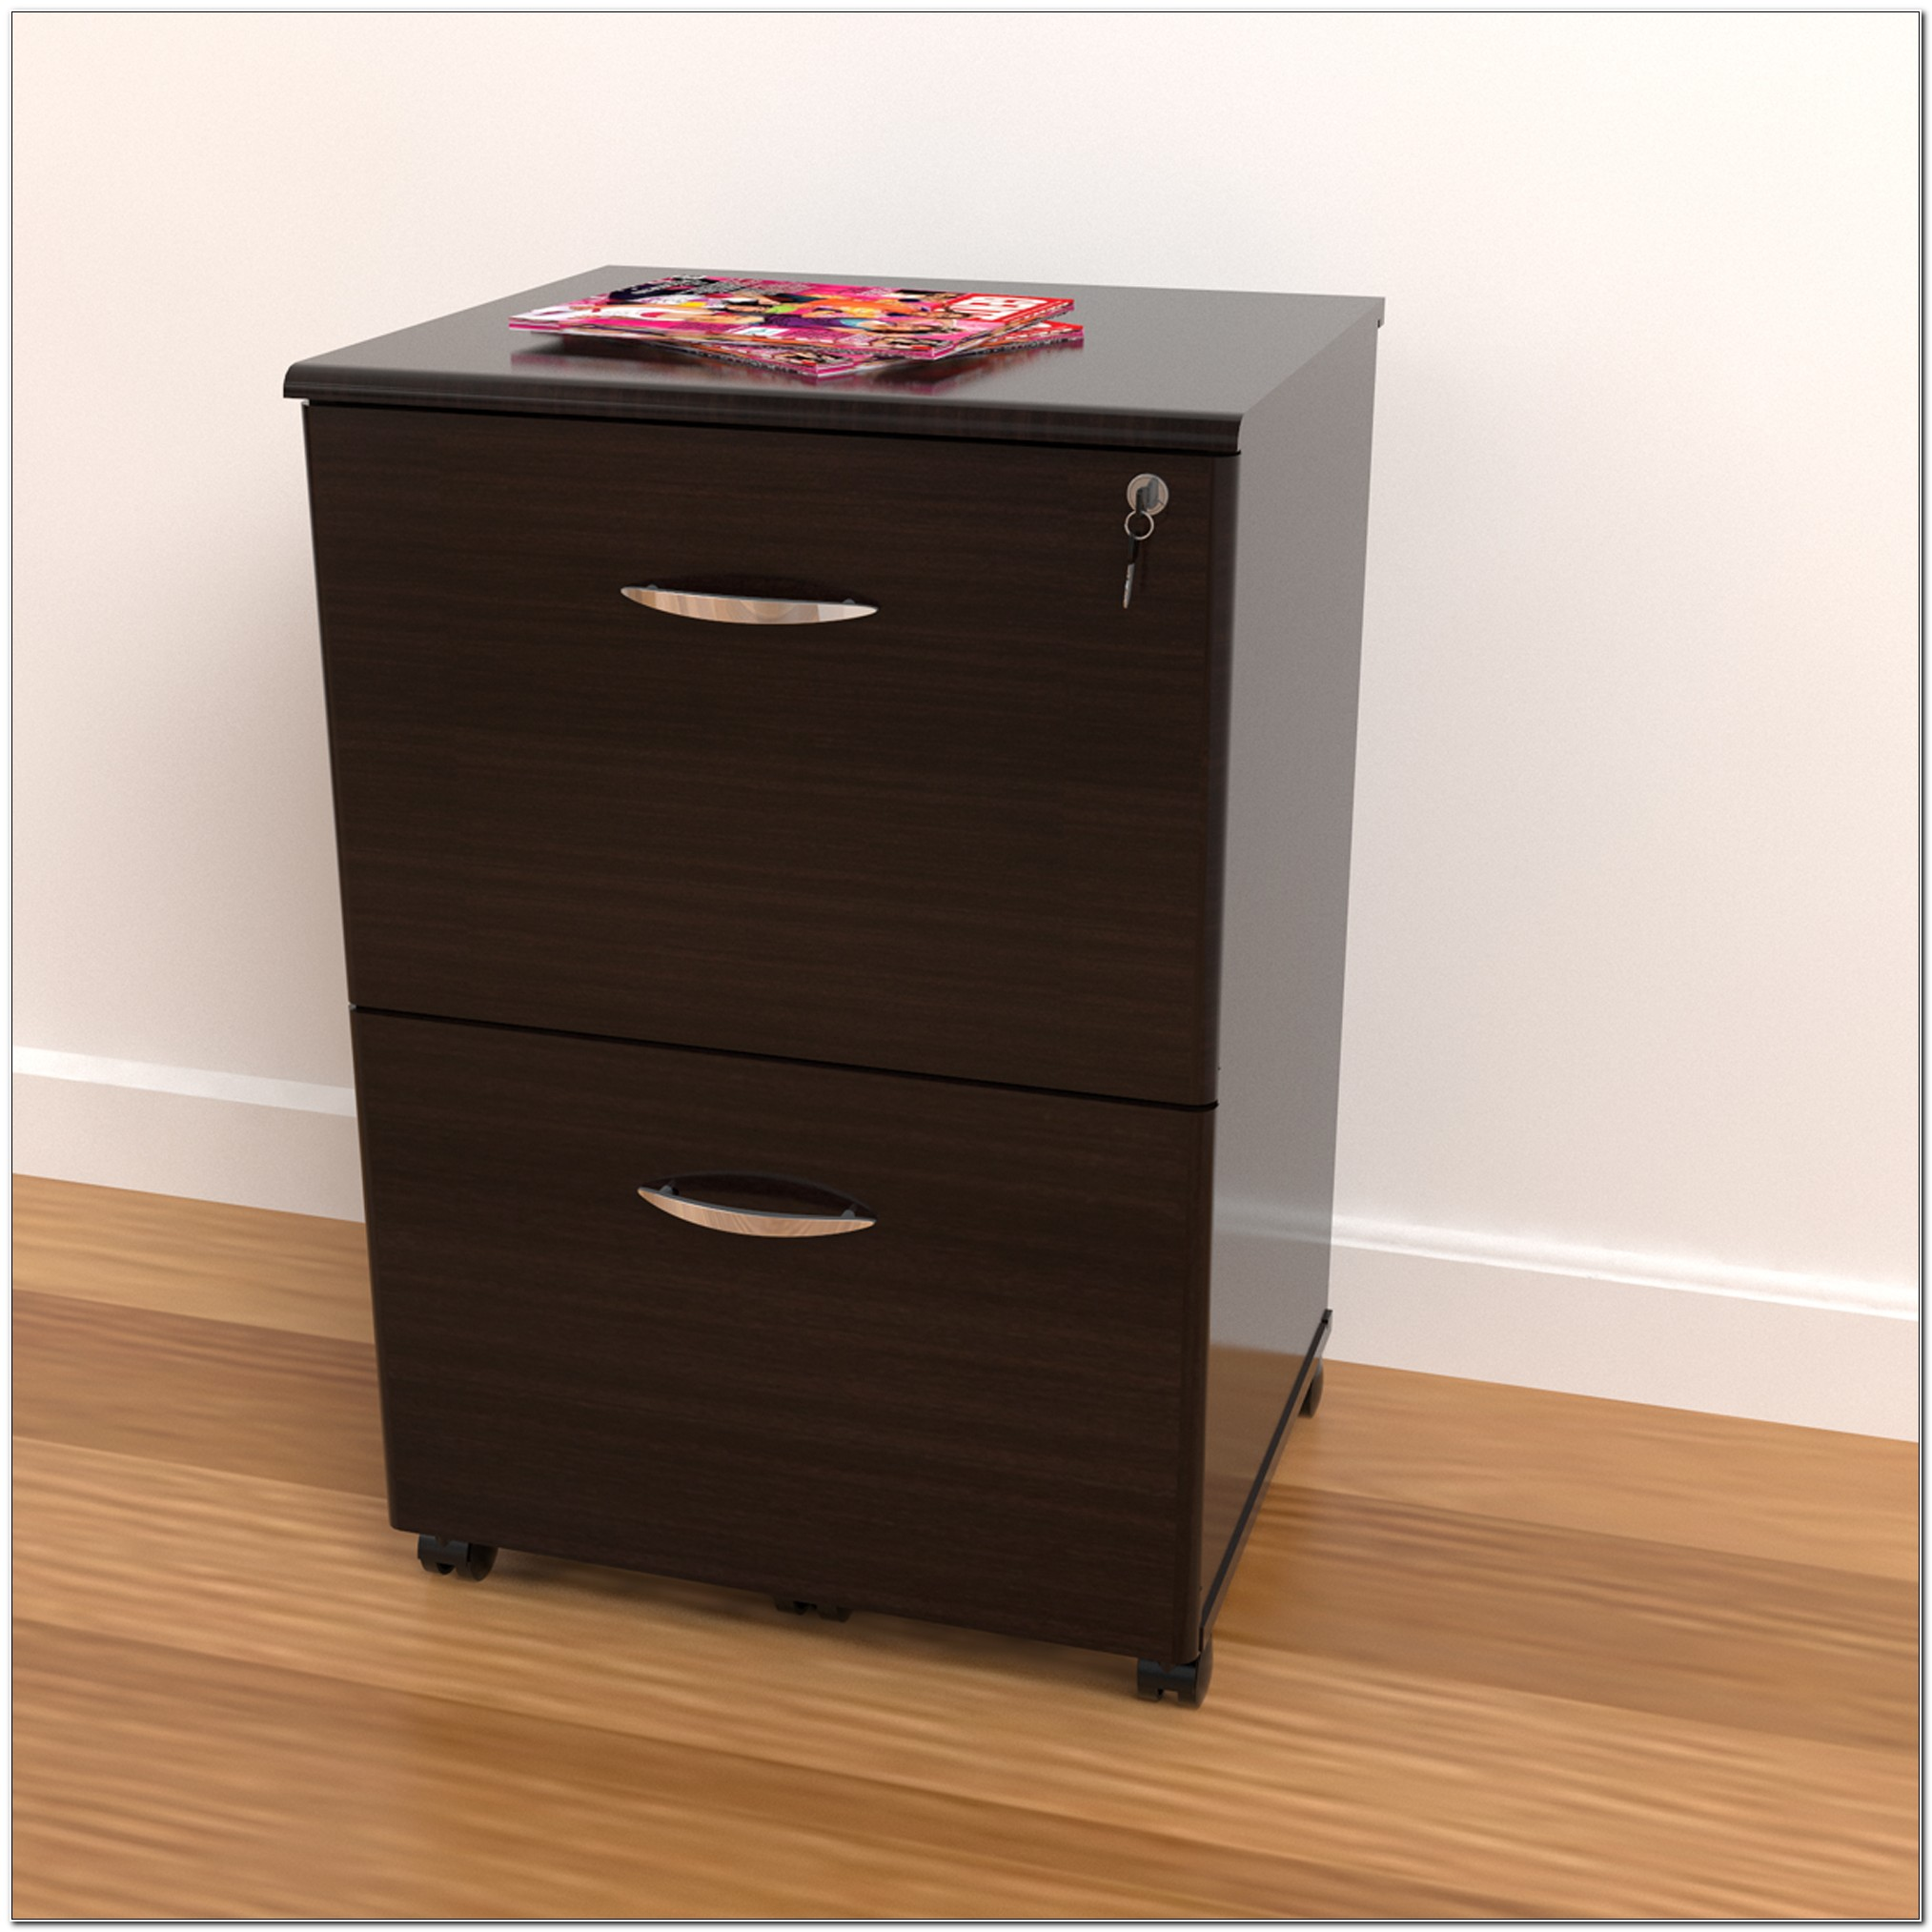 2 Drawer Foolscap Filing Cabinet On Wheels